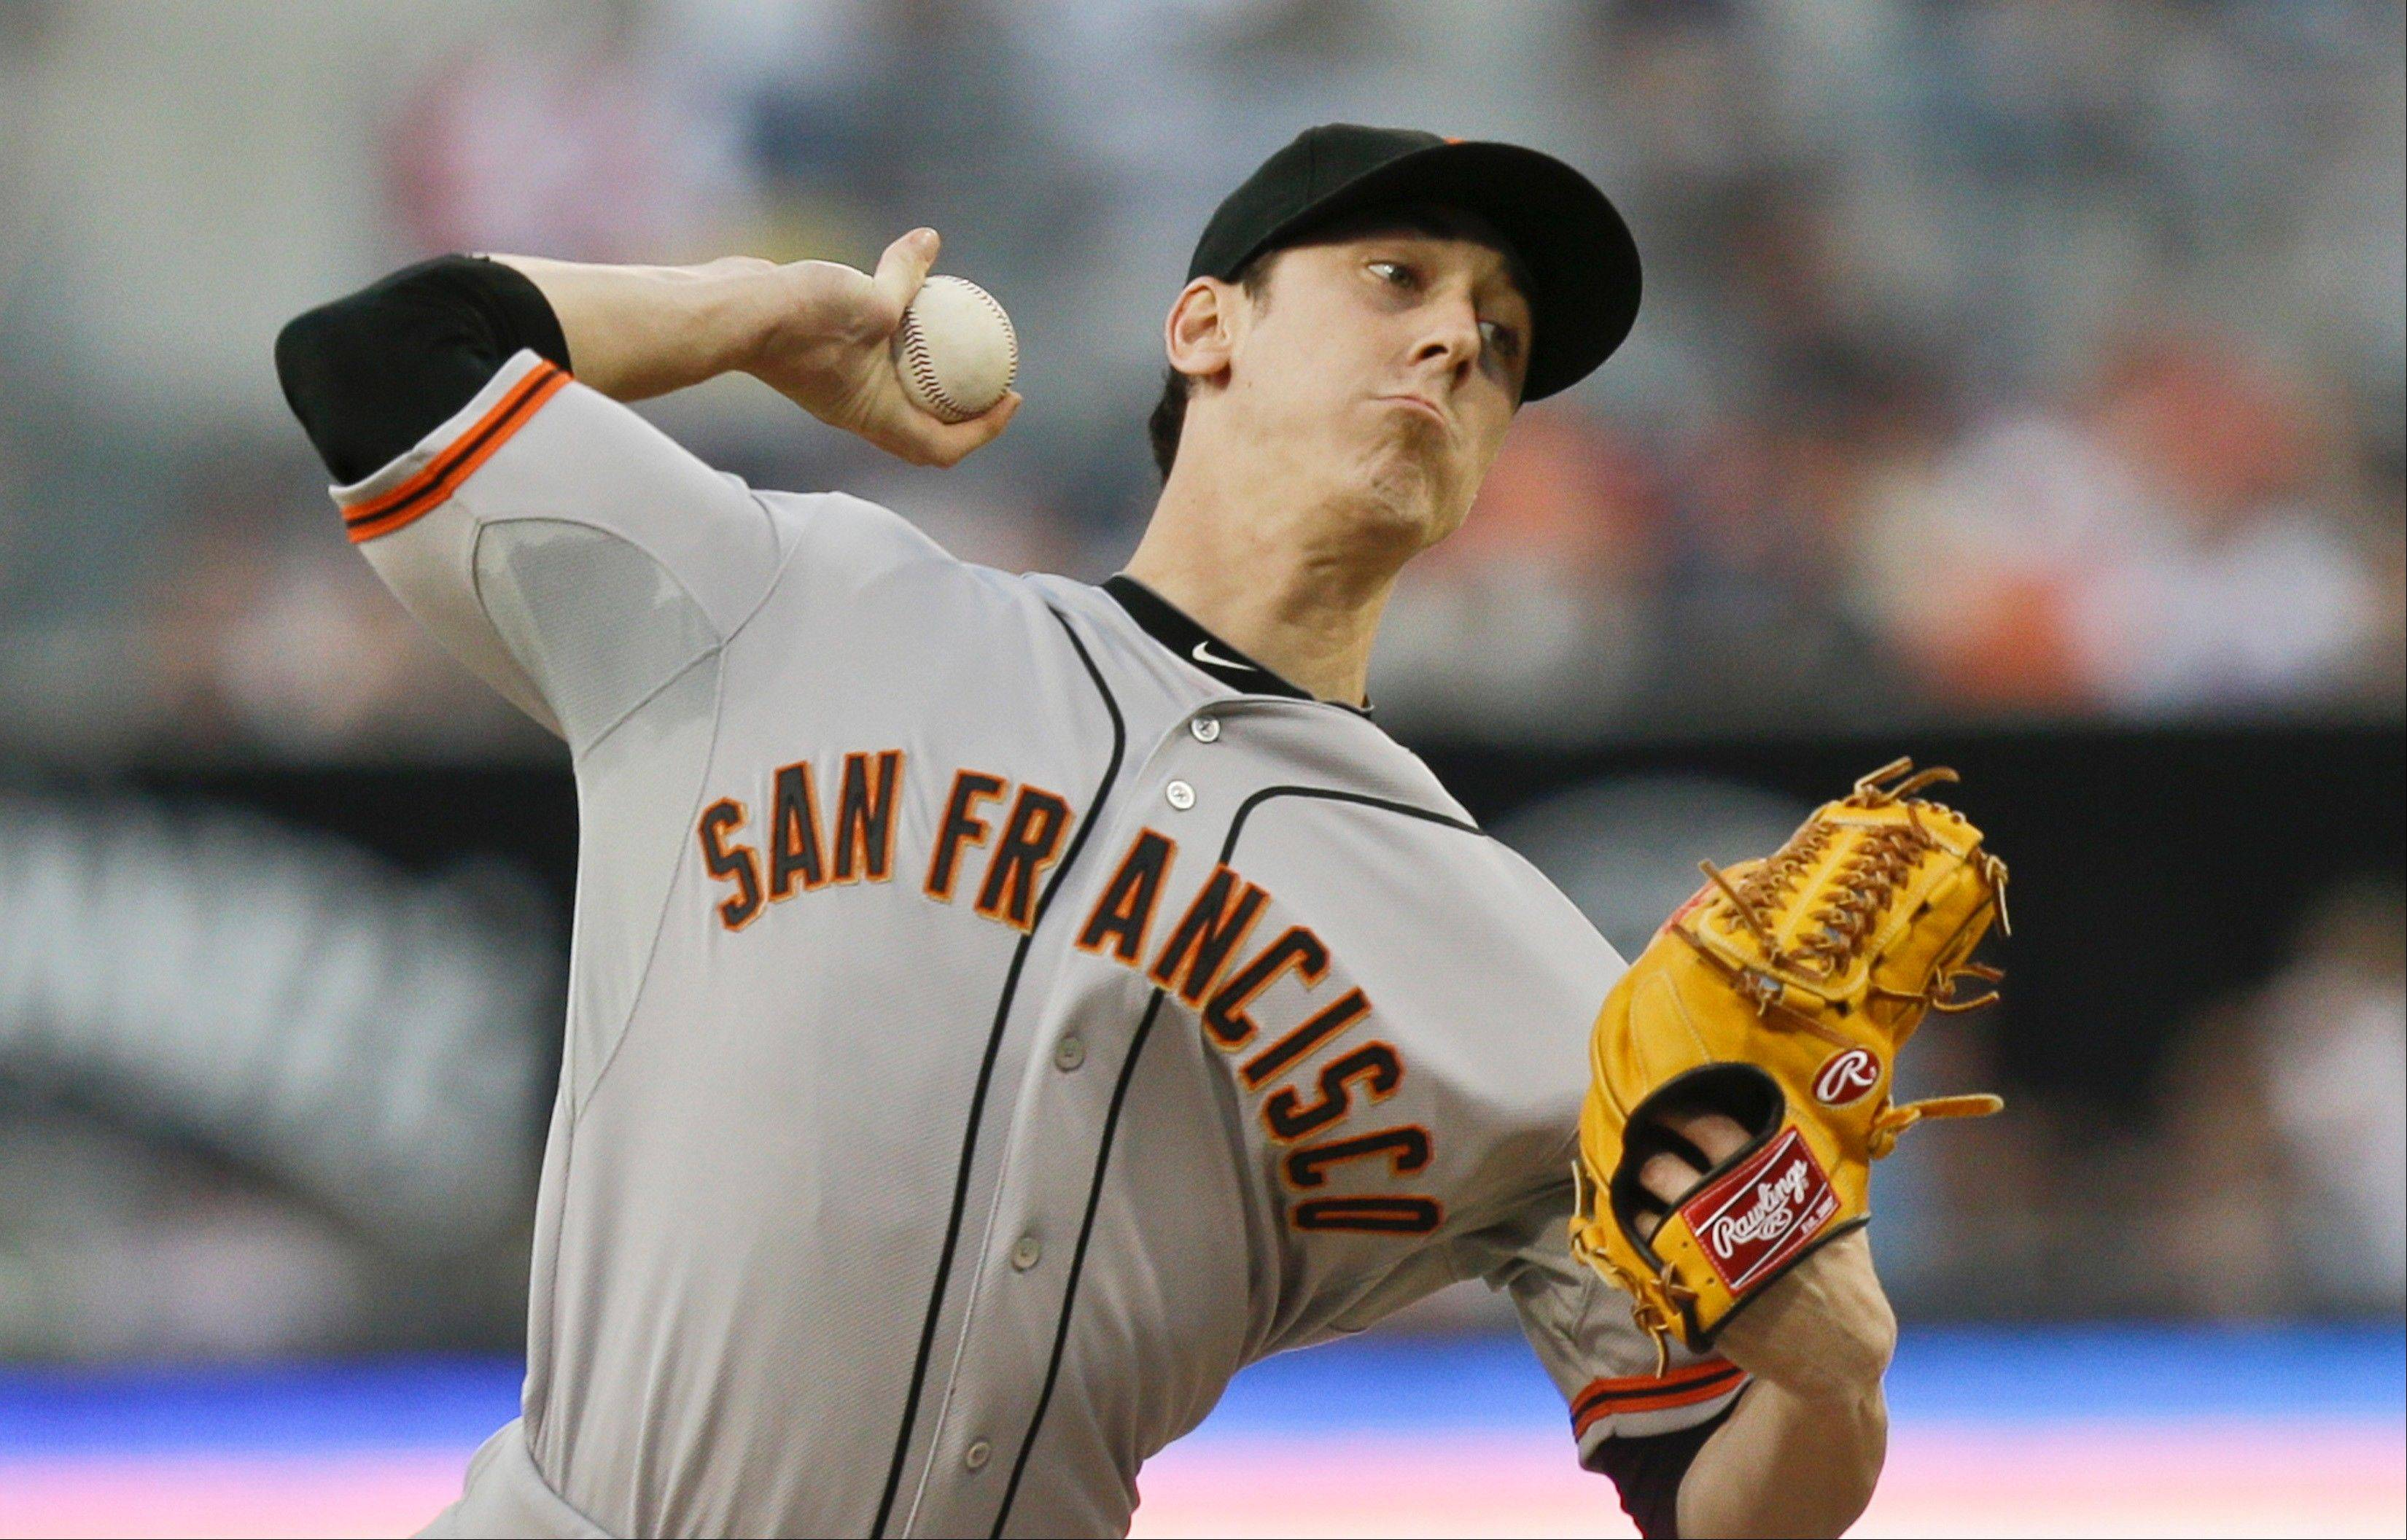 San Francisco Giants starting pitcher Tim Lincecum threw his first no-hitter against the Padres Saturday night, beating them 9-0 in San Diego.